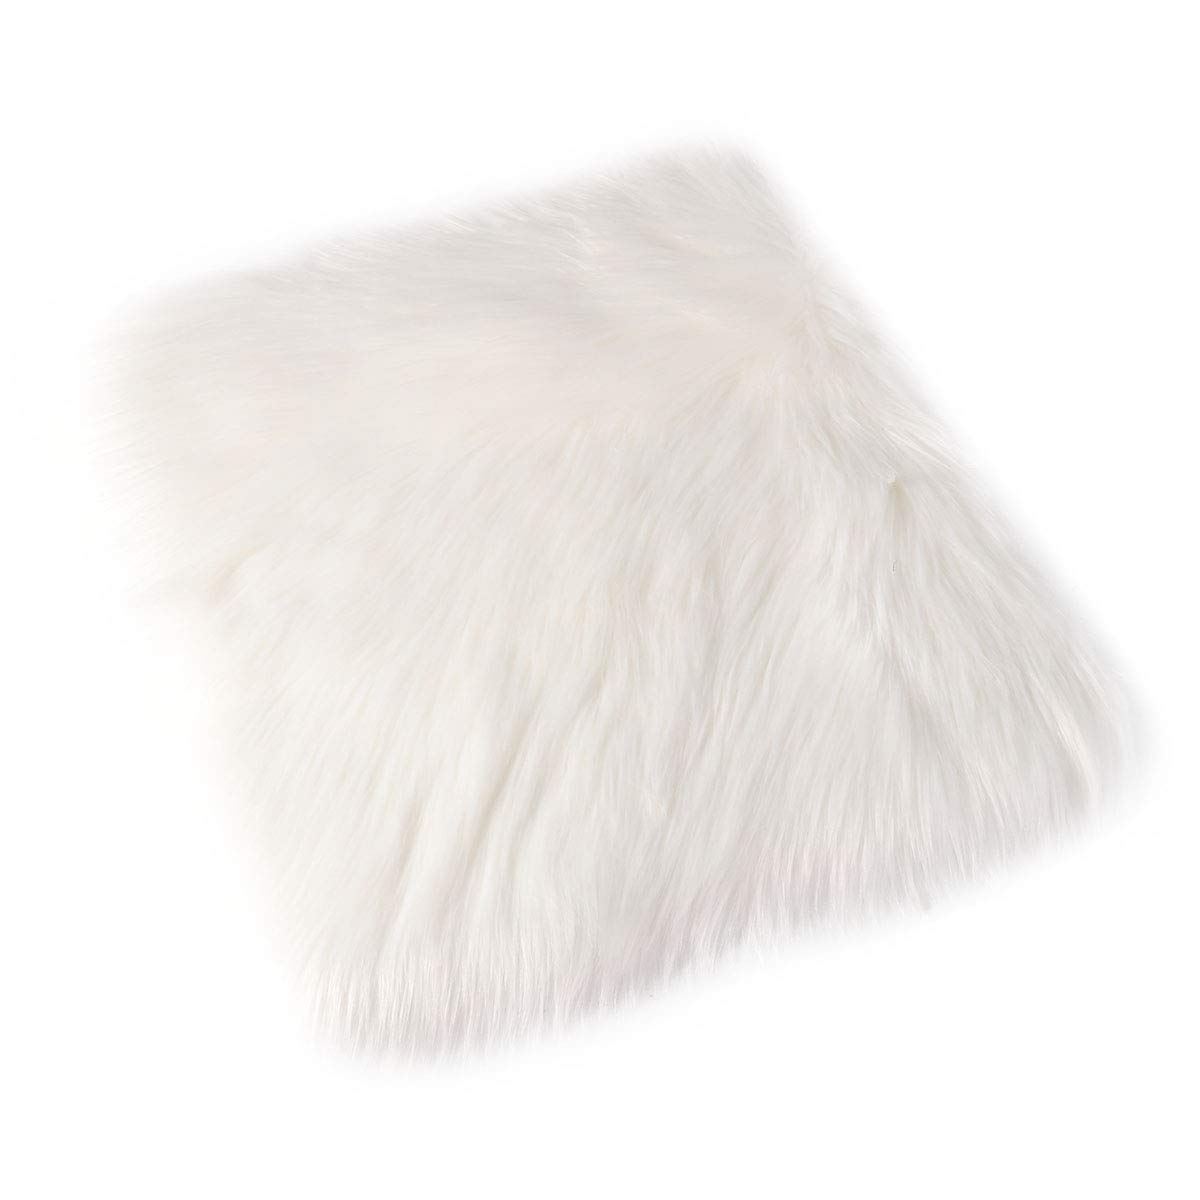 VORCOOL Soft Shaggy Faux Fur Chair Couch Cover Area Rug Yoga Window Home Office Chair Pad 4040cm